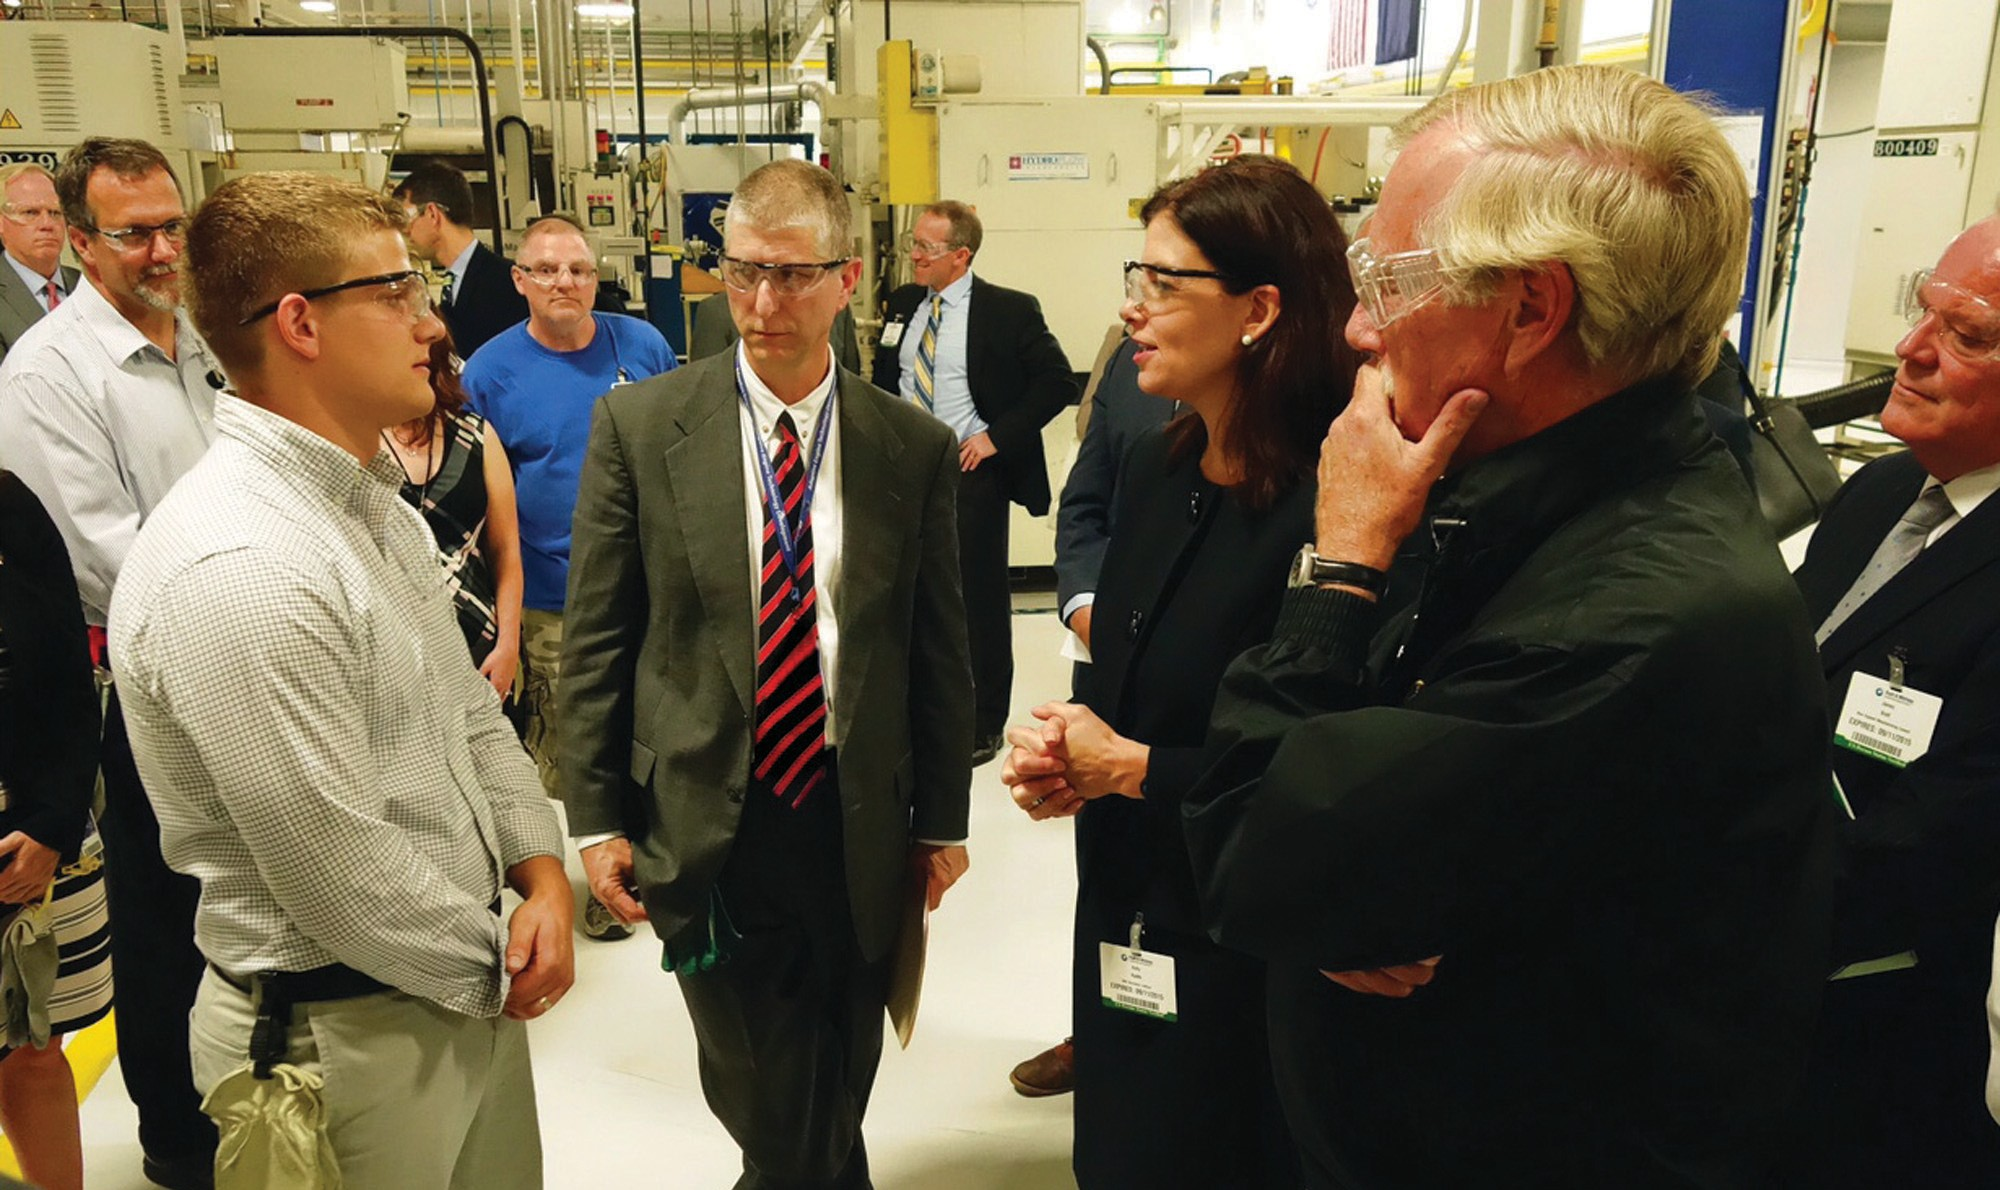 Sen. Kelly Ayotte, R-N.H., and Sen. Angus King, I-Maine, pose with Eric Matheson and Nick Claesson during a tour at Pratt & Whitney North Berwick Friday. Matheson is currently enrolled in the company's apprenticeship program, offered through a partnership with York County Community College. Claesson is one of several Thornton Academy High School students working at Pratt & Whitney as part of the National Tooling and Machining Association-U curriculum offered at the high school.